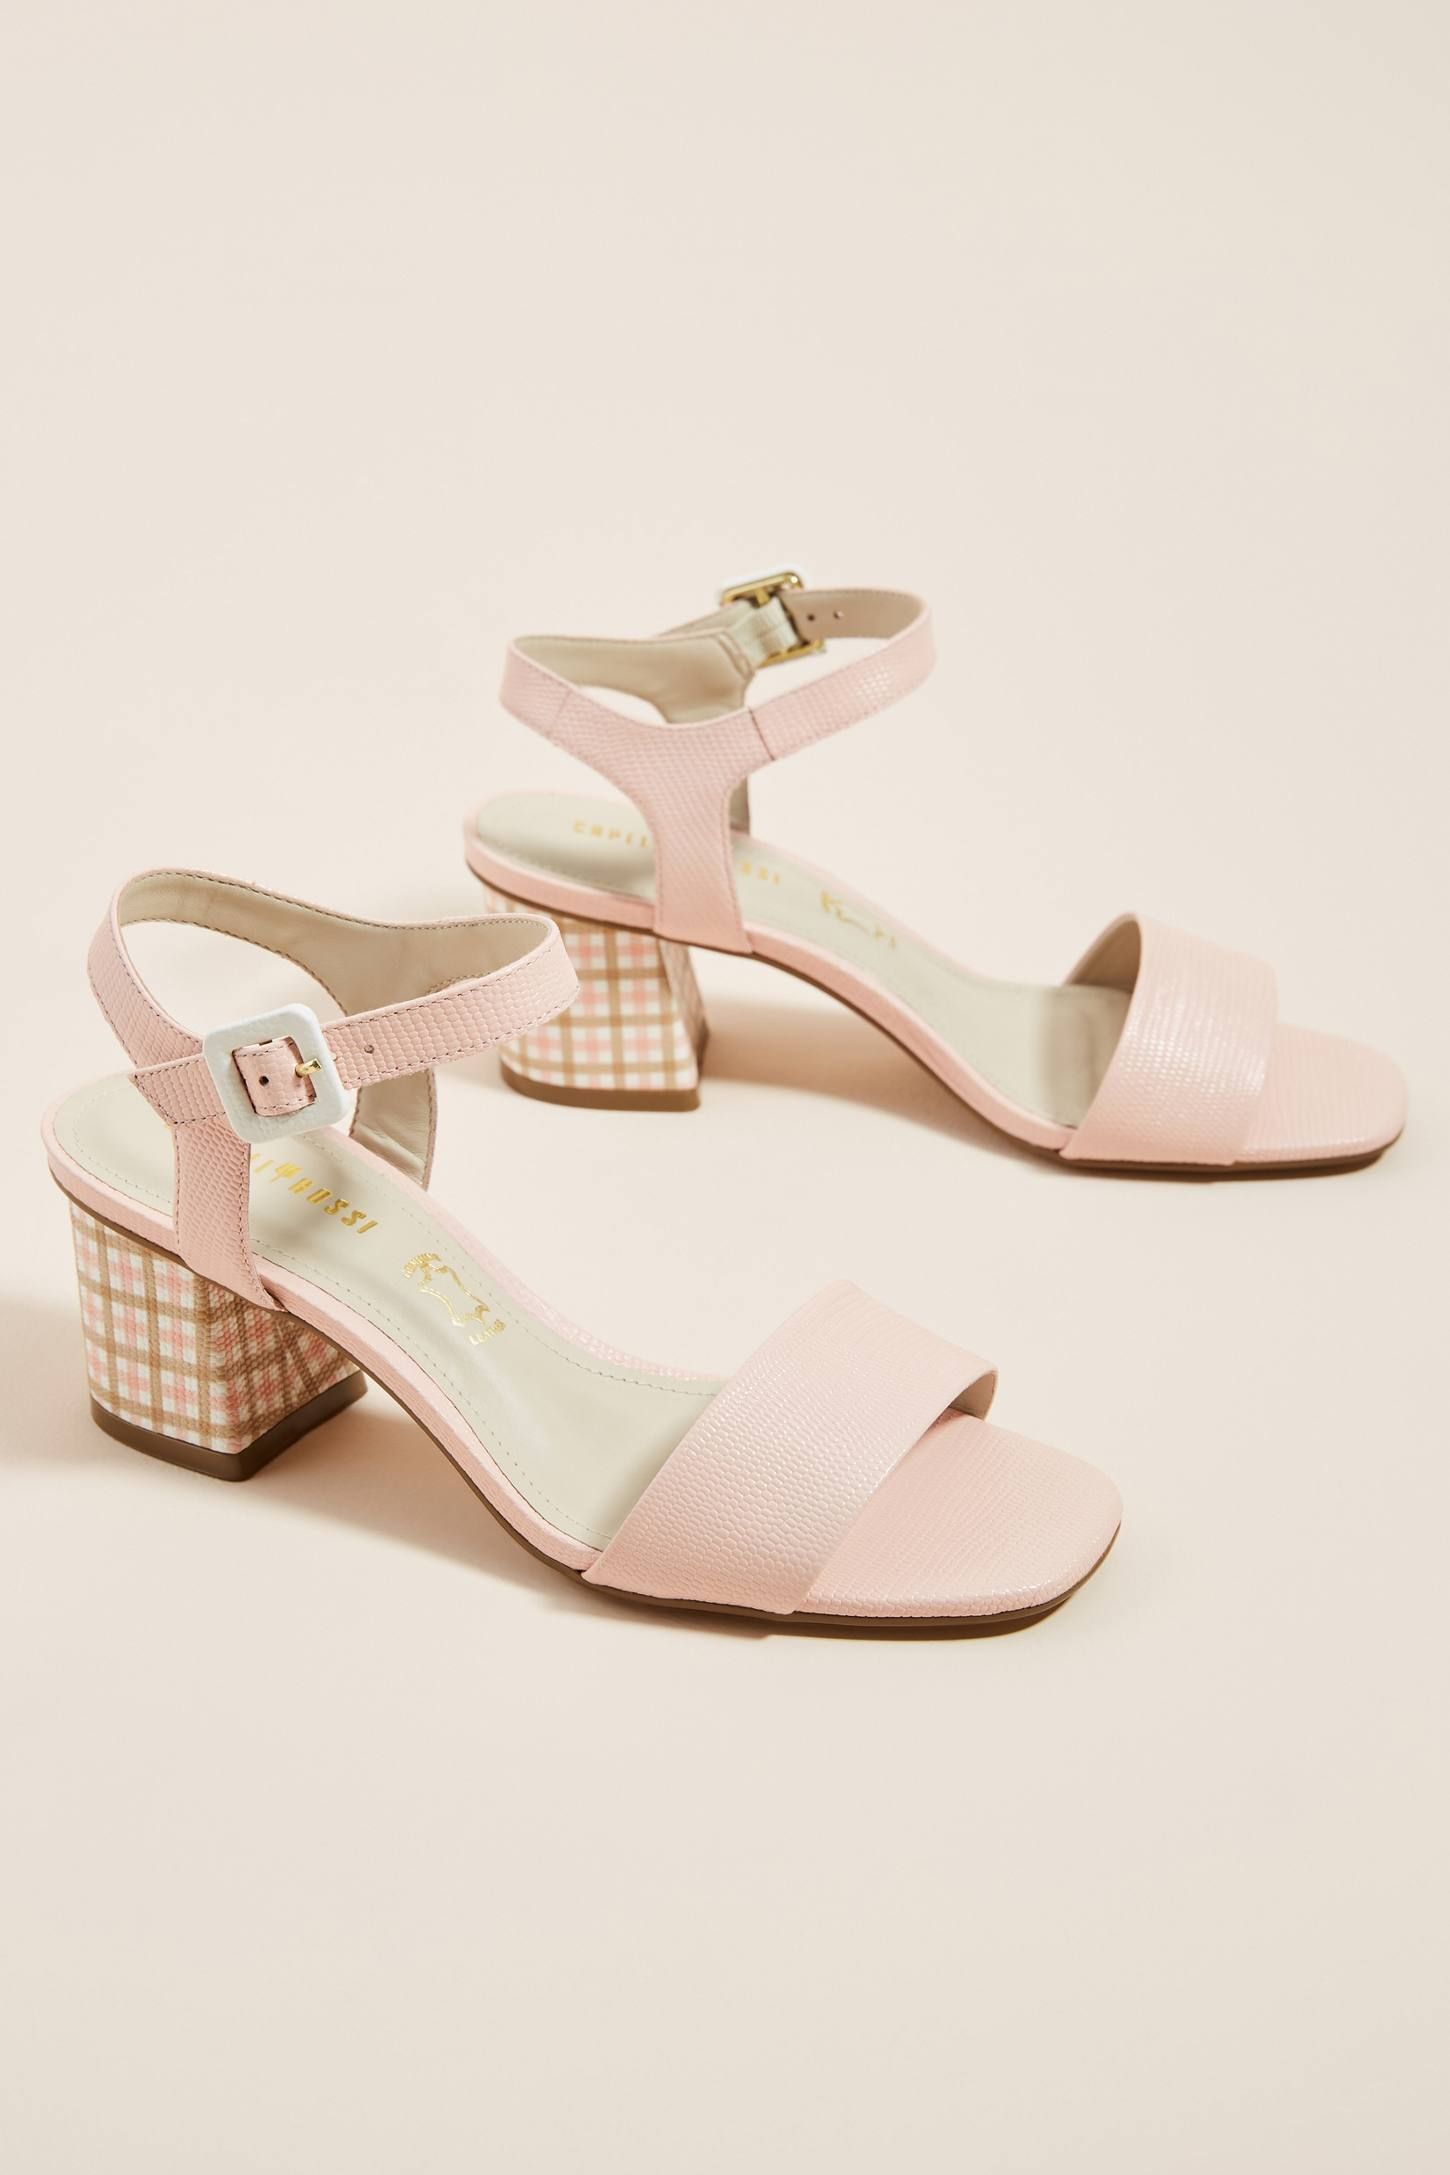 67e58fed84 Capelli Rossi Gingham Heeled Sandals in 2019 | Passion for Fashion ...